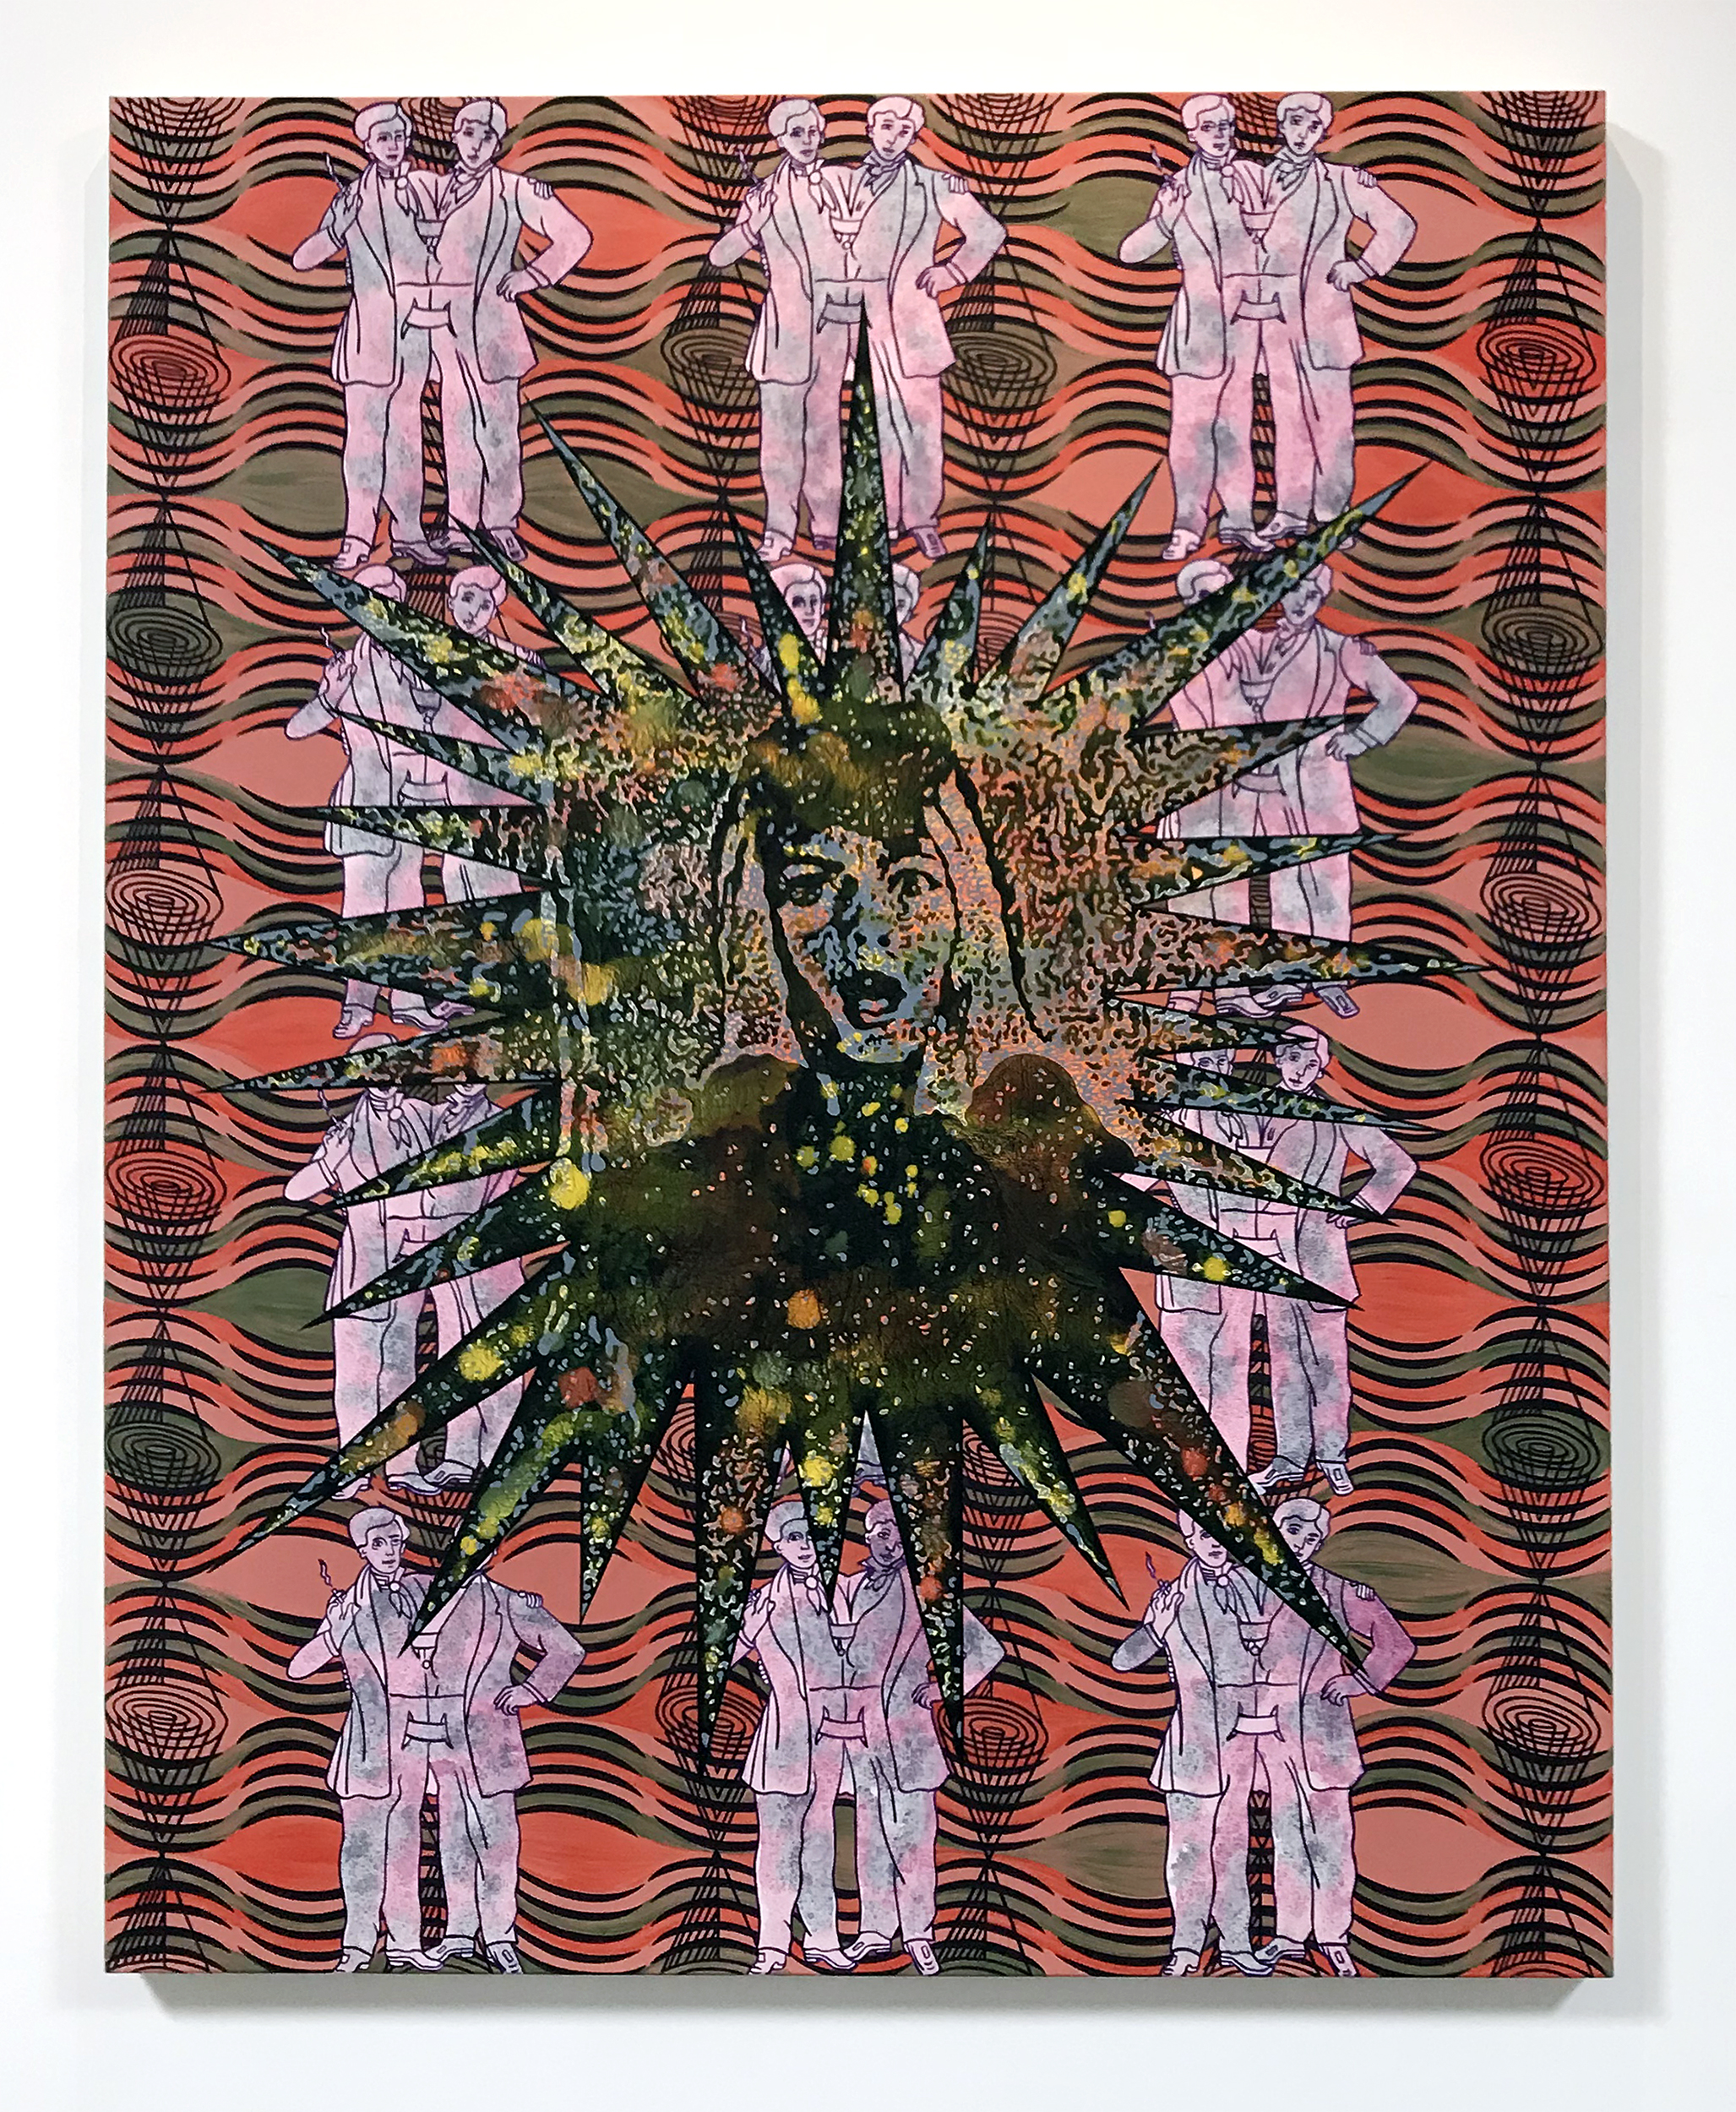 Carole Caroompas, Before and After Frankenstein: The Woman Who Knew Too Much: Spectre and Emanation,  1994, acrylic on canvas, 60 x 48 inches